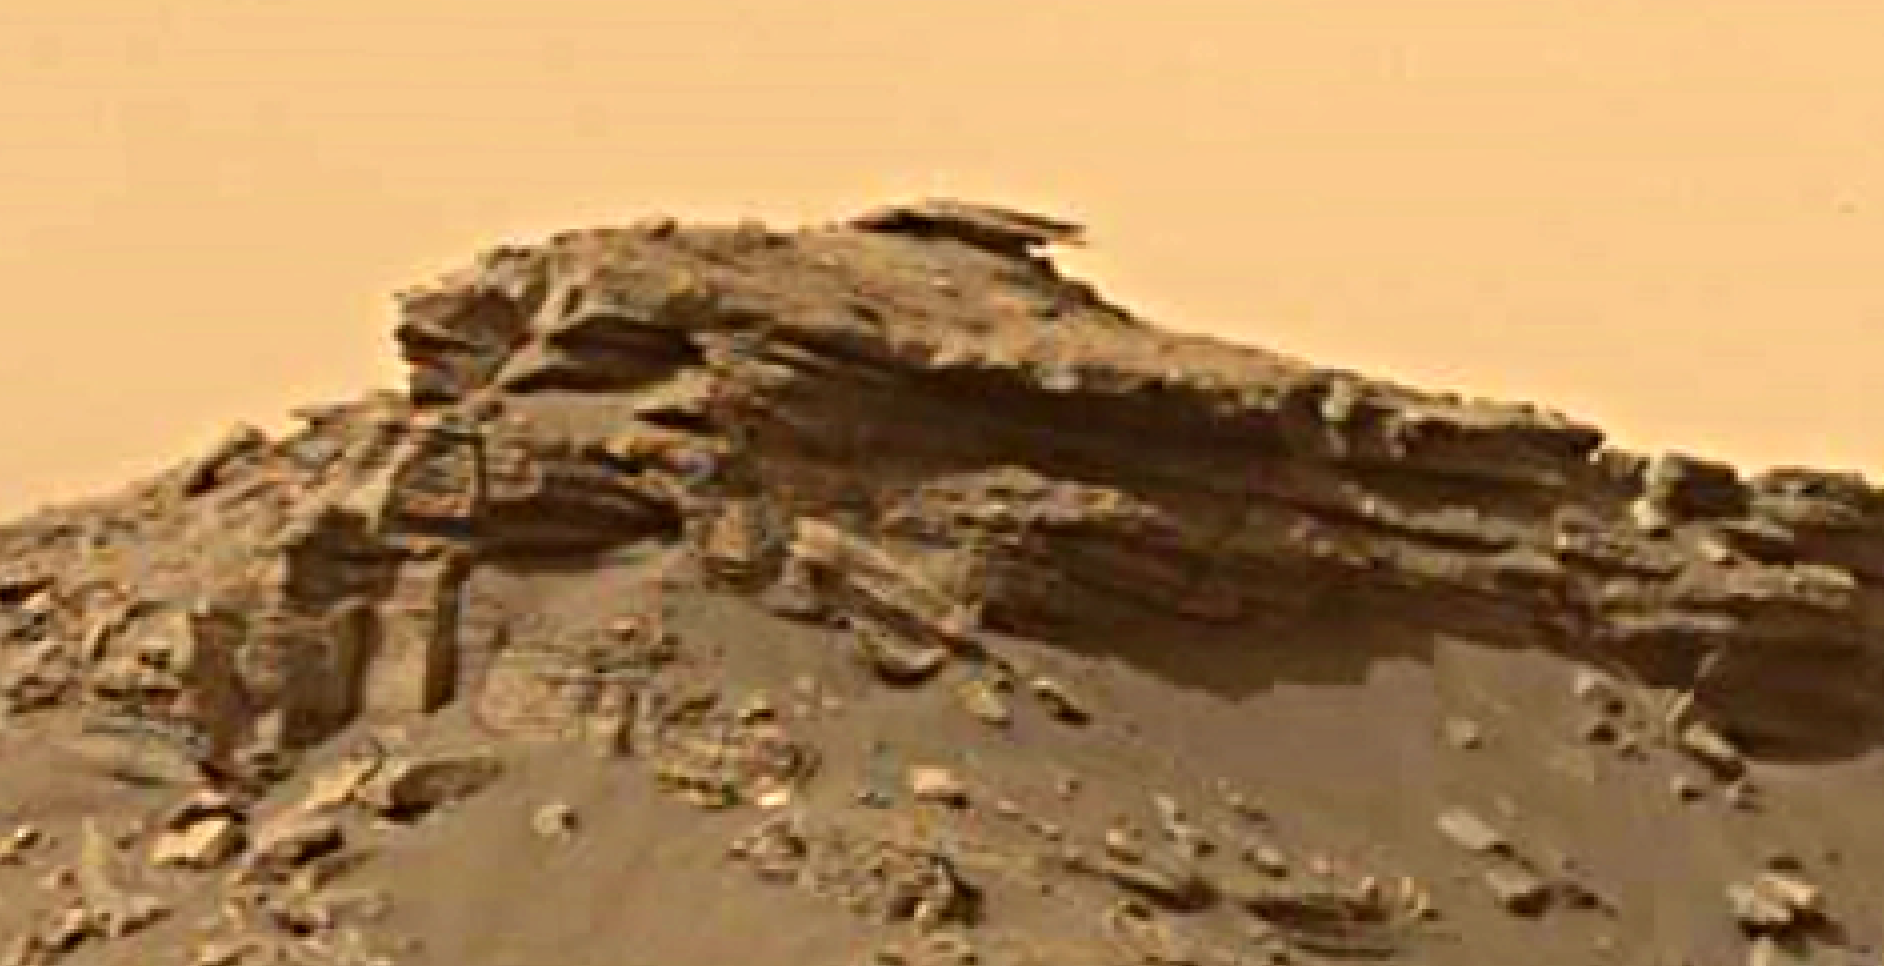 mars-sol-1451-anomaly-artifacts-1-was-life-on-mars